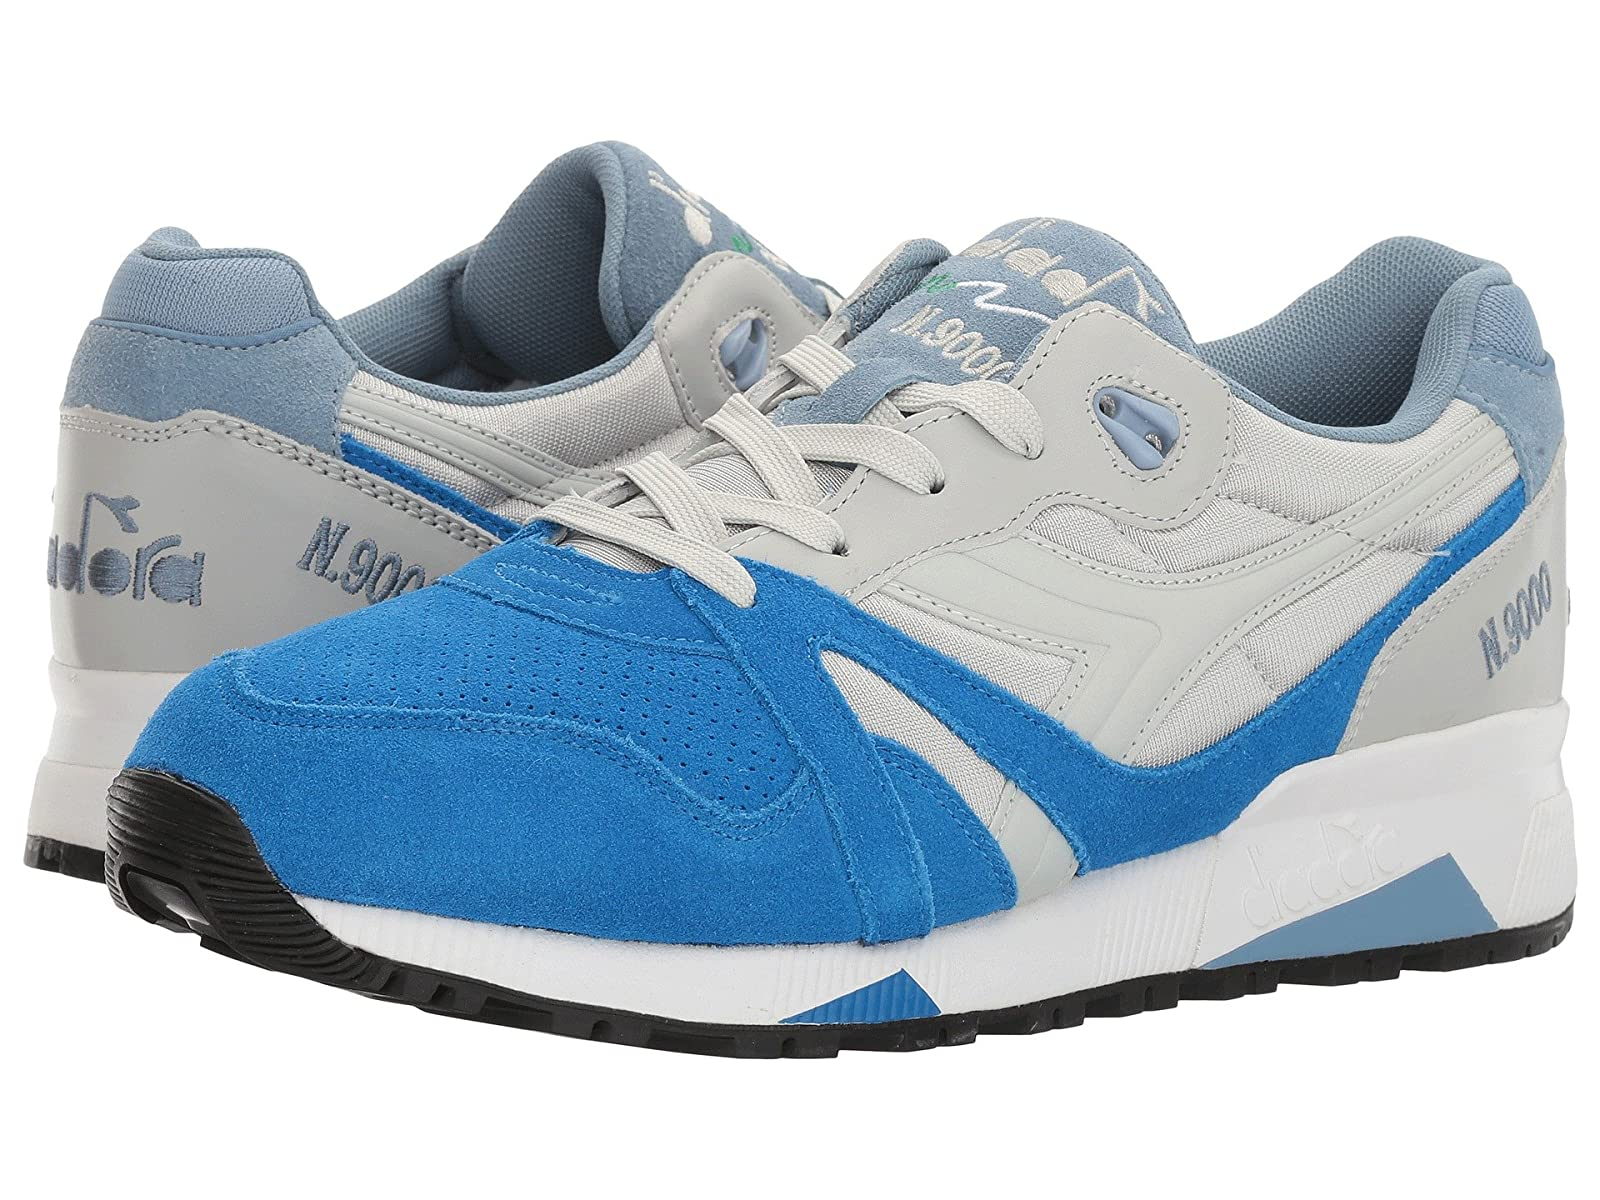 Diadora N9000 Double LCheap and distinctive eye-catching shoes